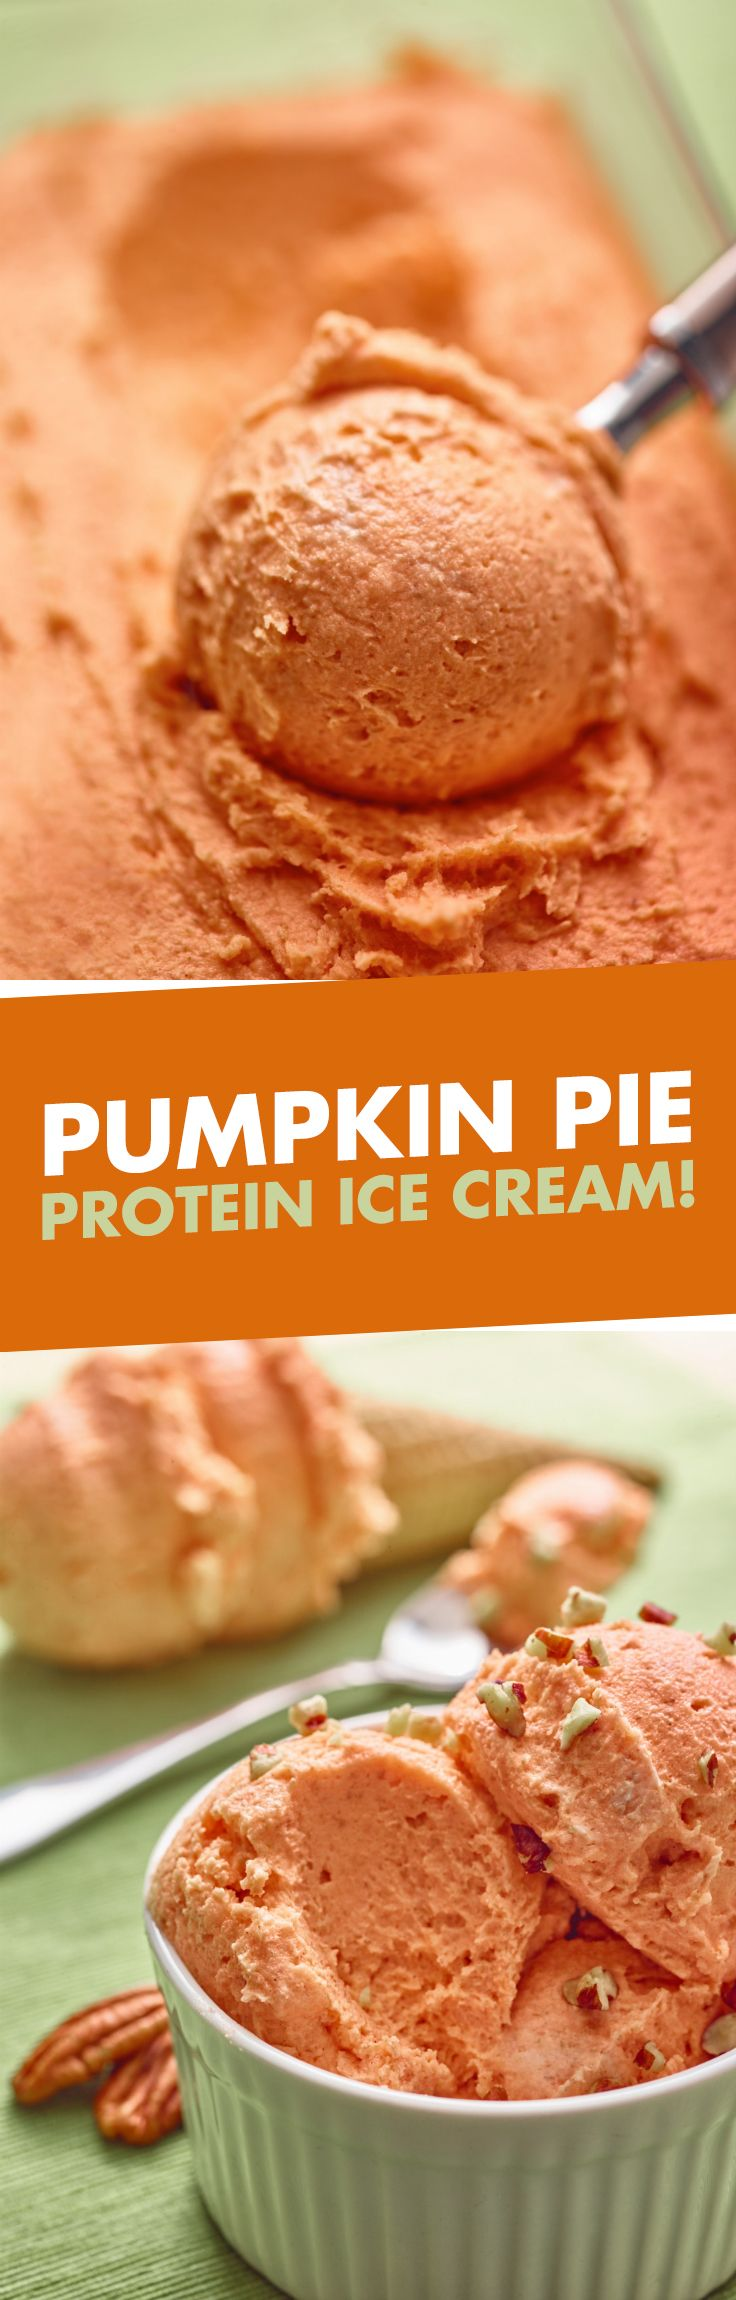 5 words: Pumpkin Pie Protein Ice Cream. 10g of protein and super EASY to make!